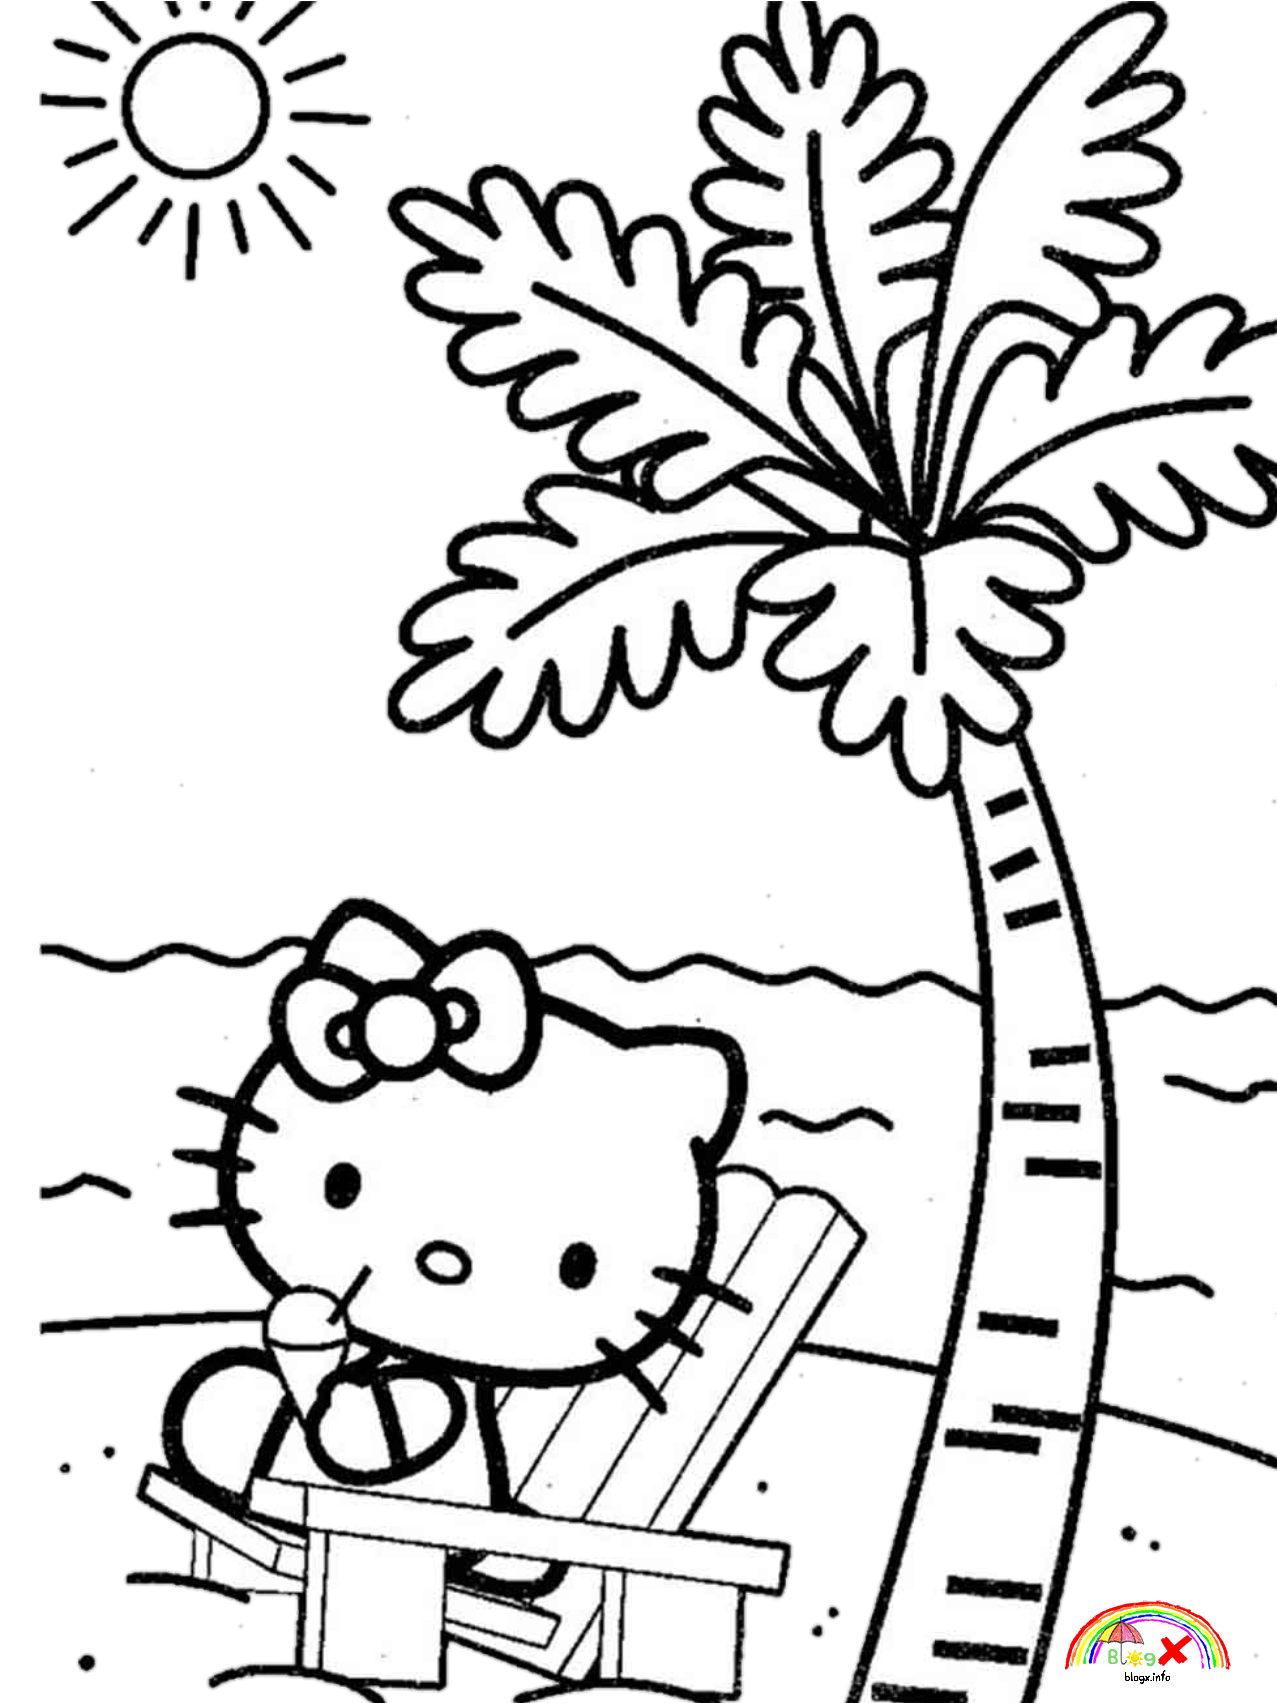 Pin By Anareli A On Coloring Pages Hello Kitty Coloring Hello Kitty Colouring Pages Hello Kitty Printables